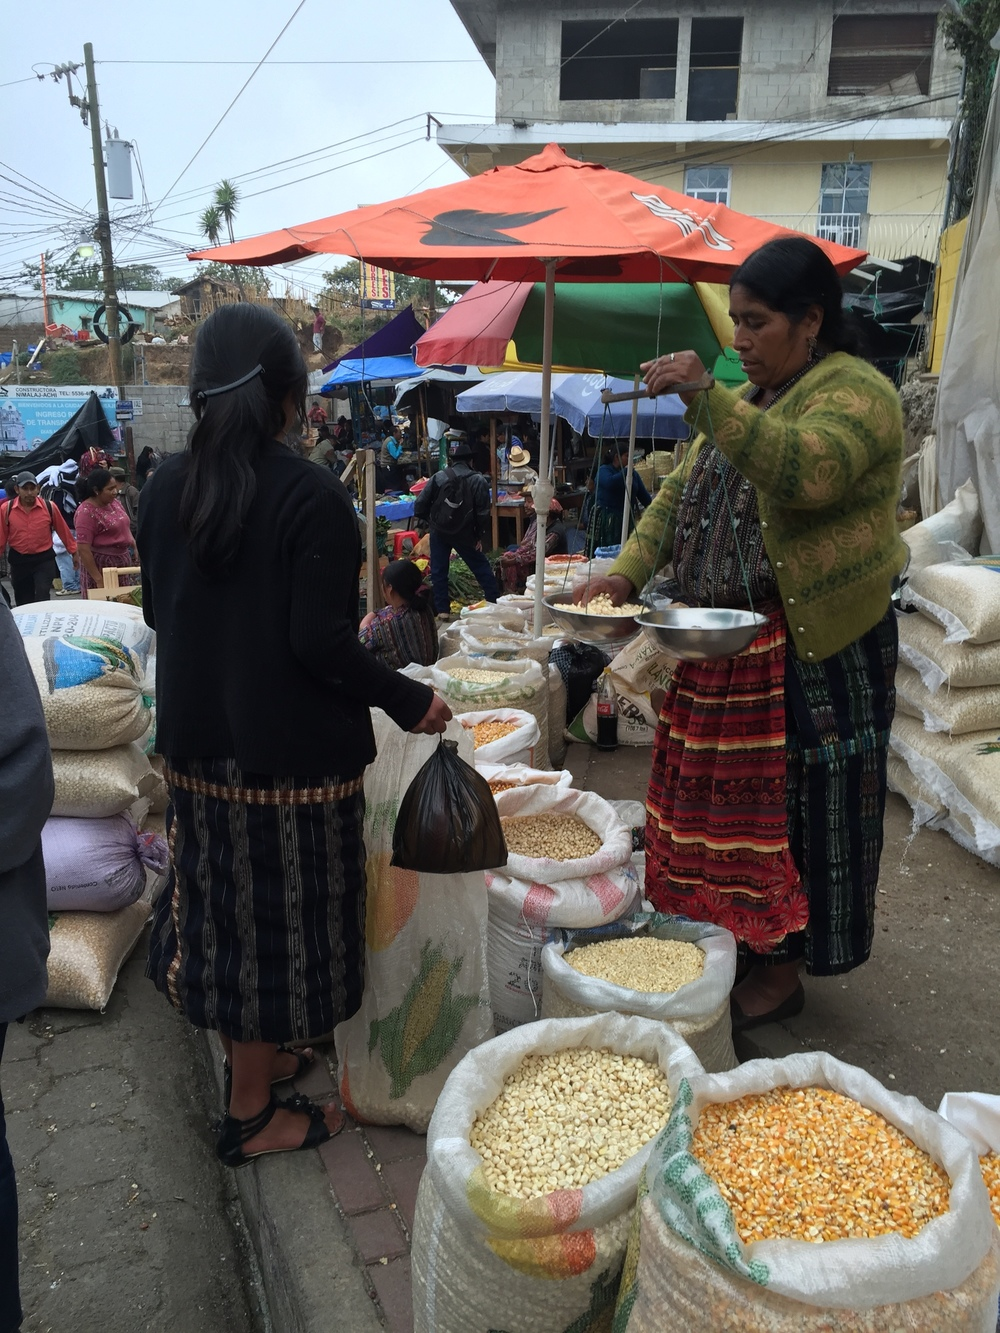 Selling maize and beans in the Solala market.